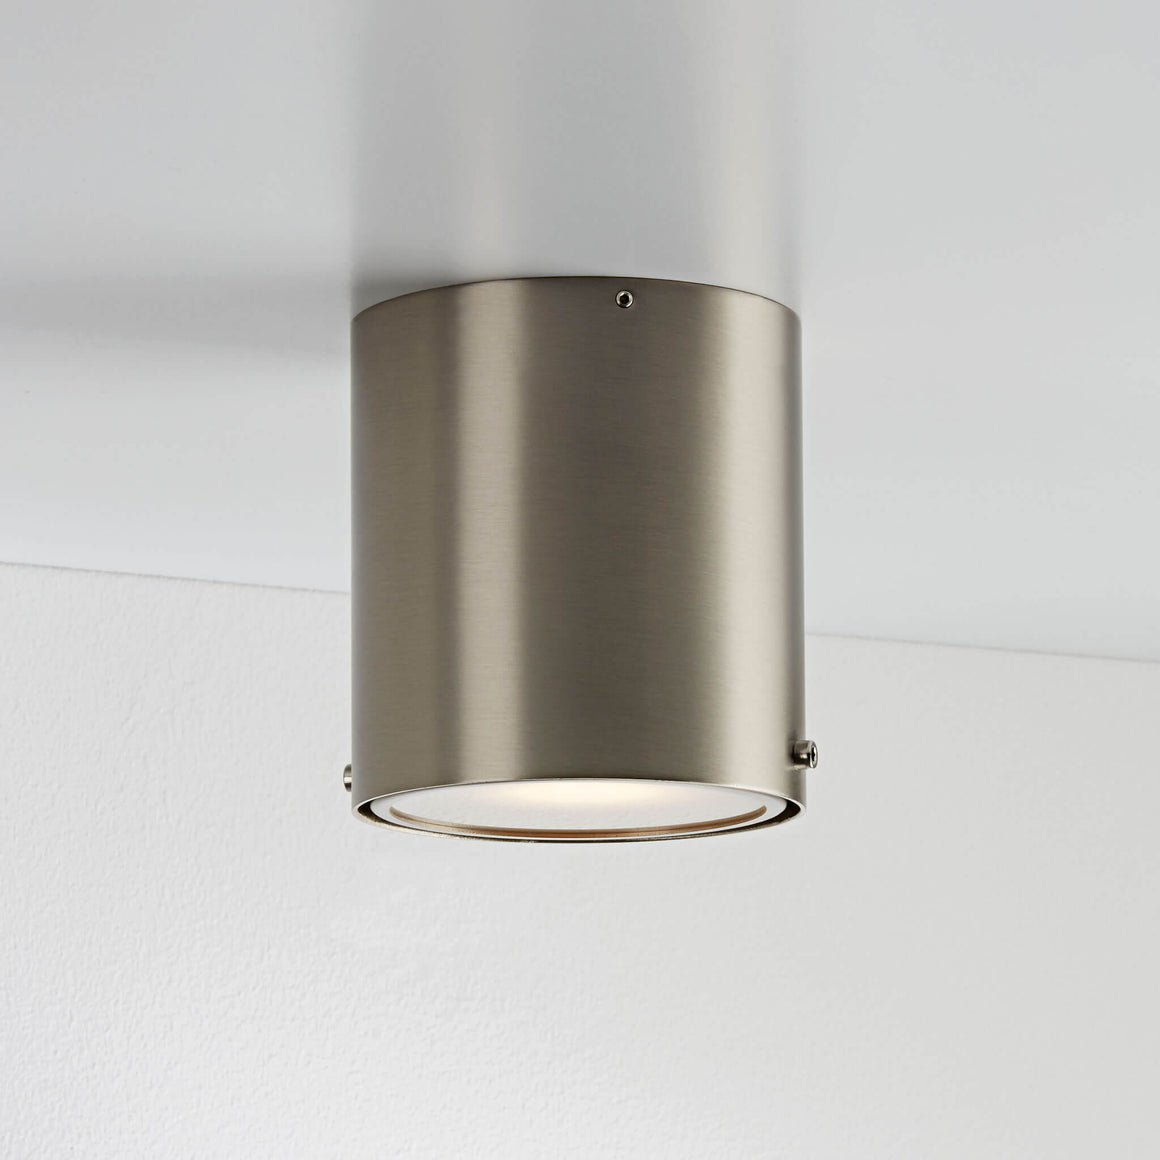 Nordlux Bathroom Surface Mounted Downlight - Brushed Steel - Bathroom - Lampsy